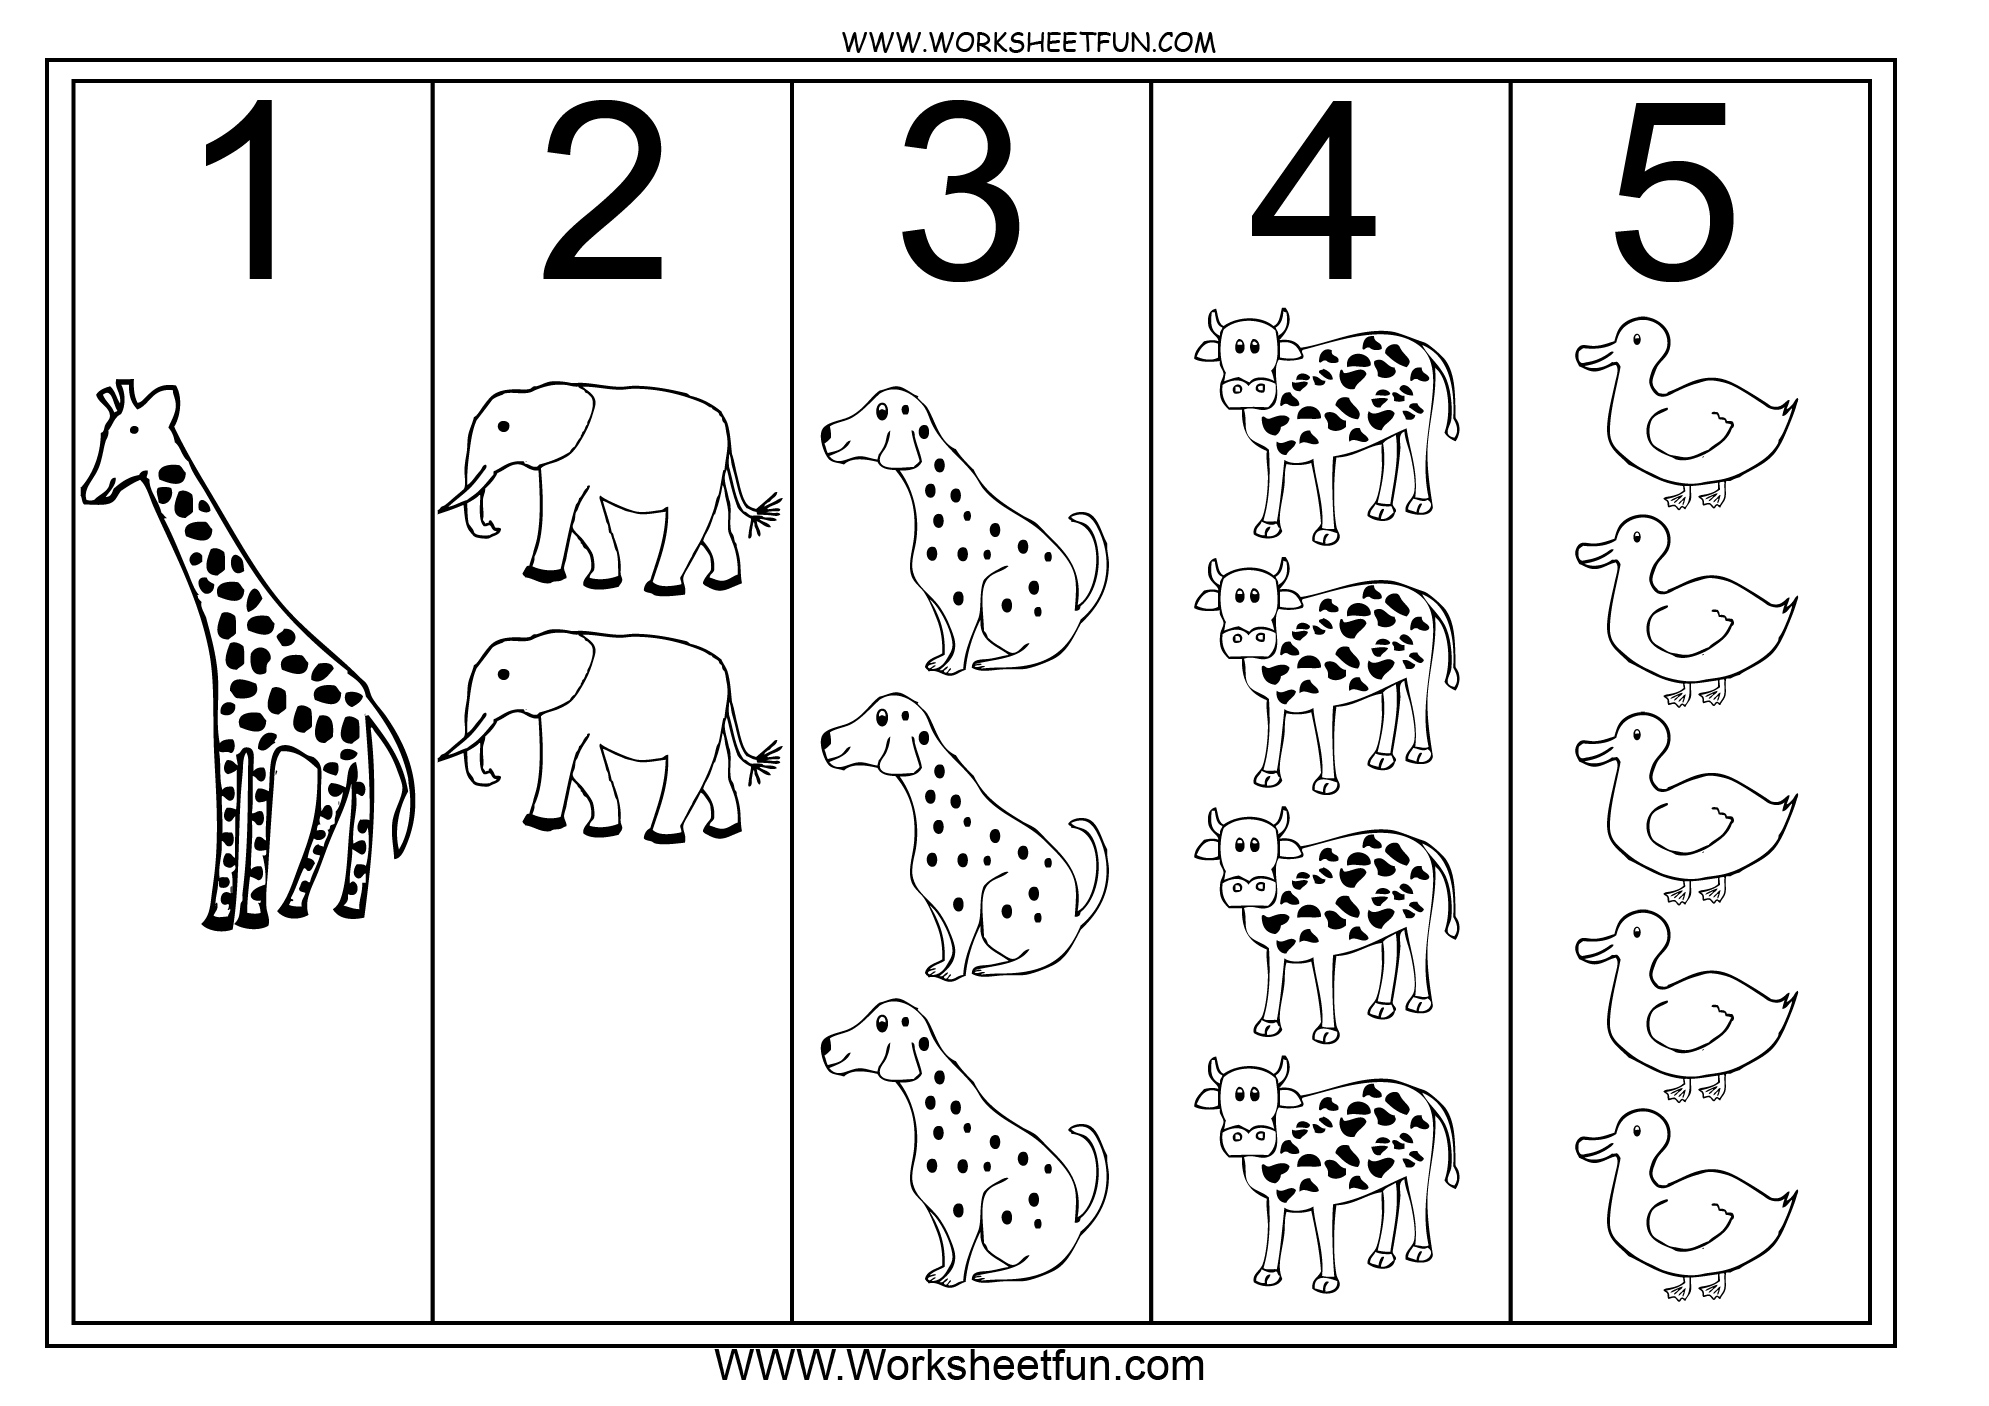 coloring pages 1 5 coloring pages for kids by mr adron free 1 peter 57 coloring 1 5 pages